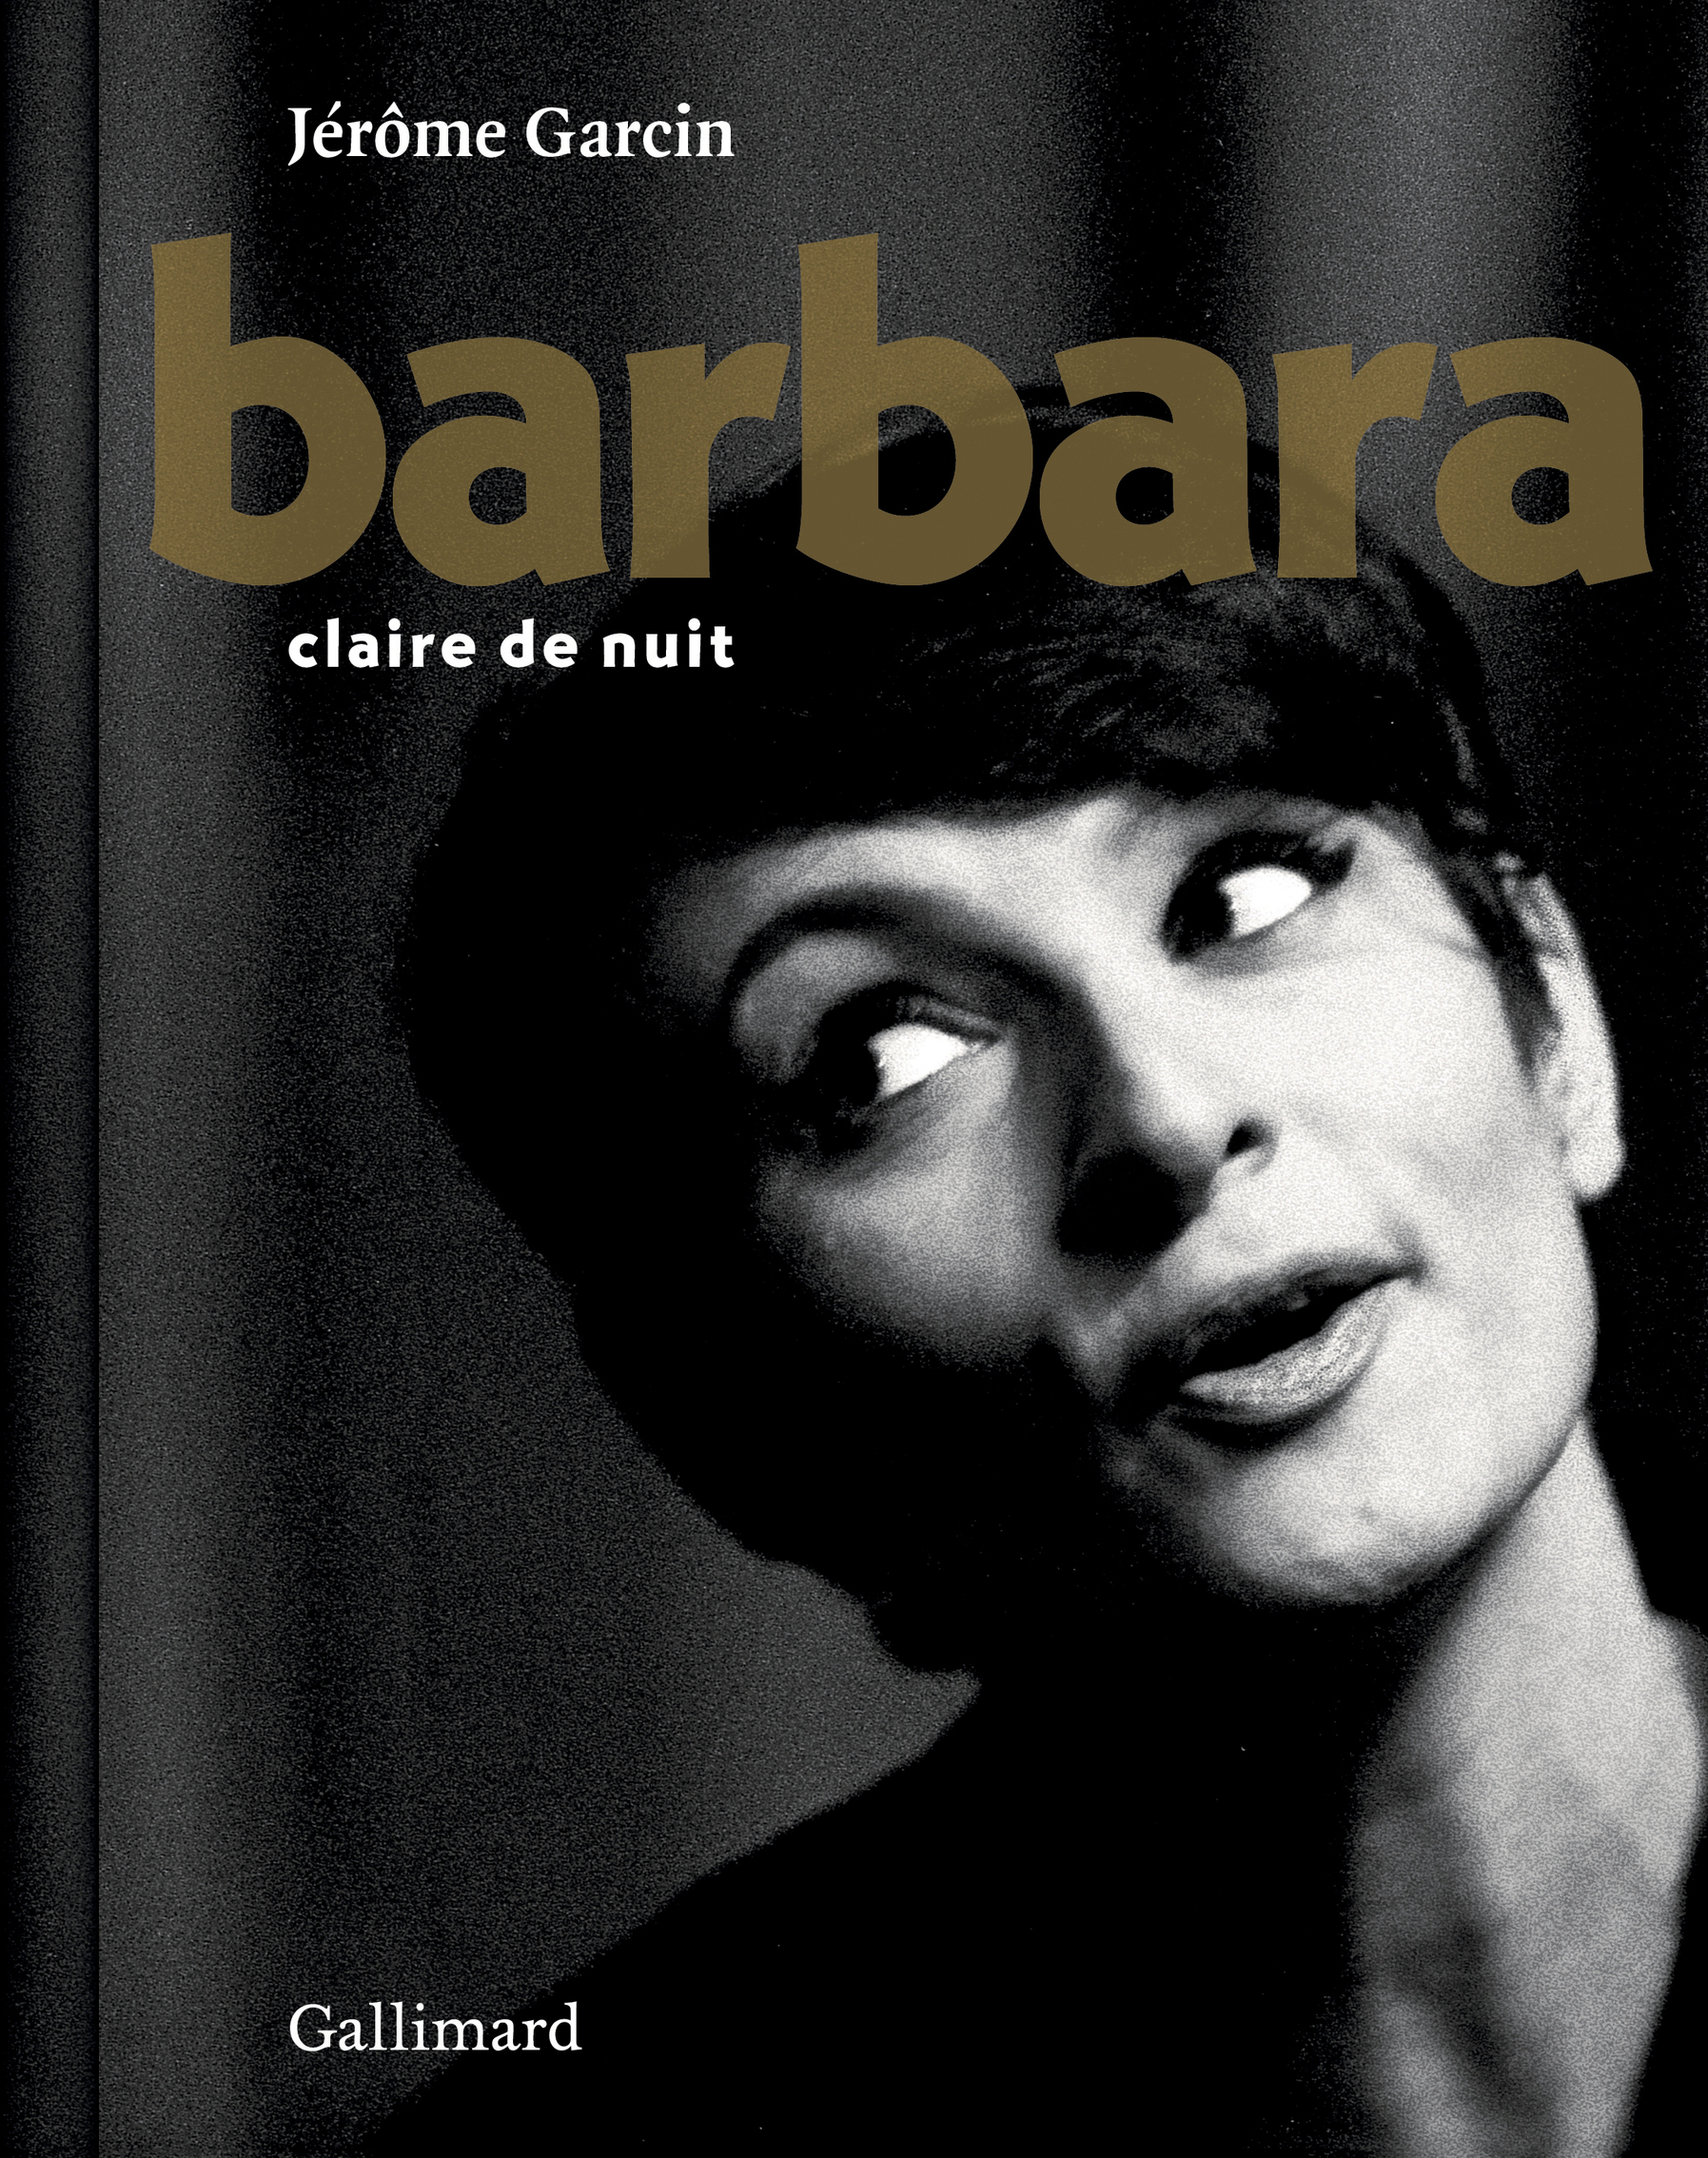 BARBARA, CLAIRE DE NUIT (EDITION ILLUSTREE)